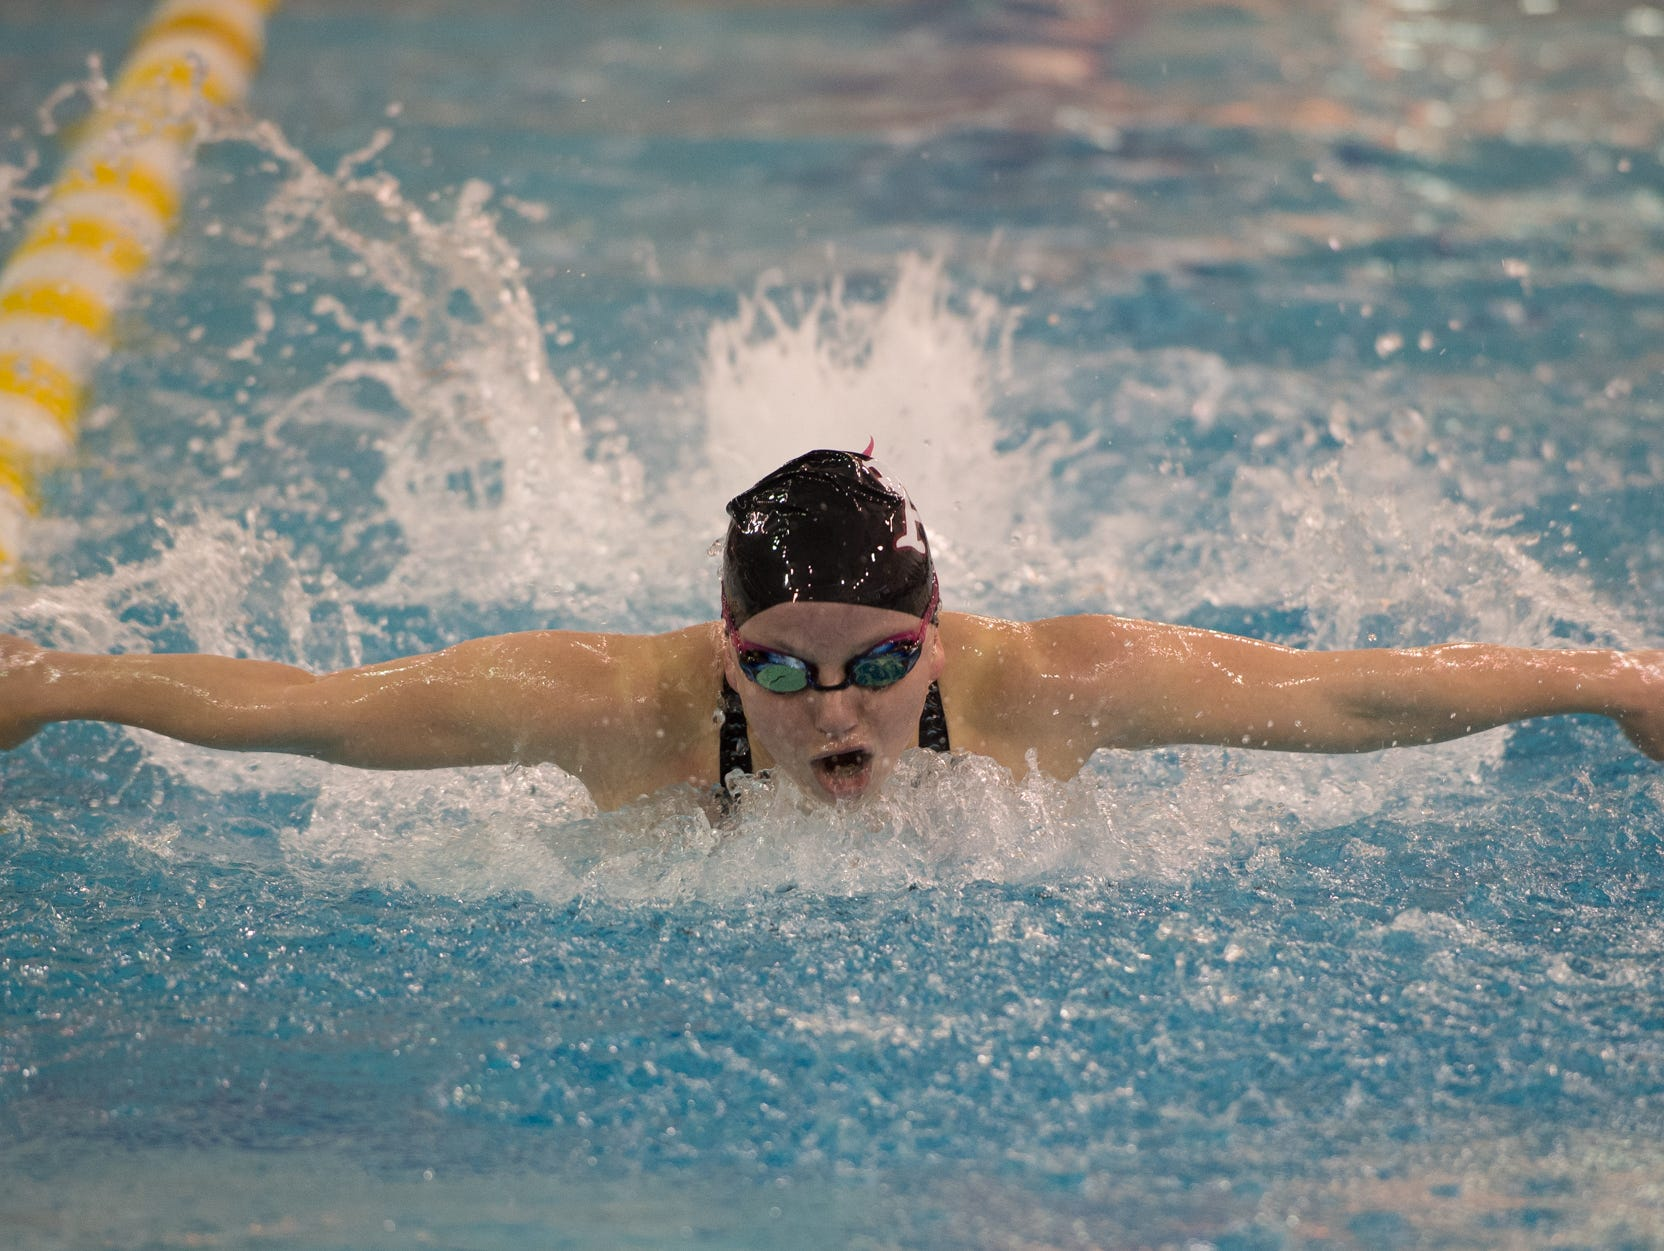 Appoquinimink's Josephine Marsh competes in the 100 yard butterfly final at the girl's DIAA swimming and diving championships at the University of Delaware.